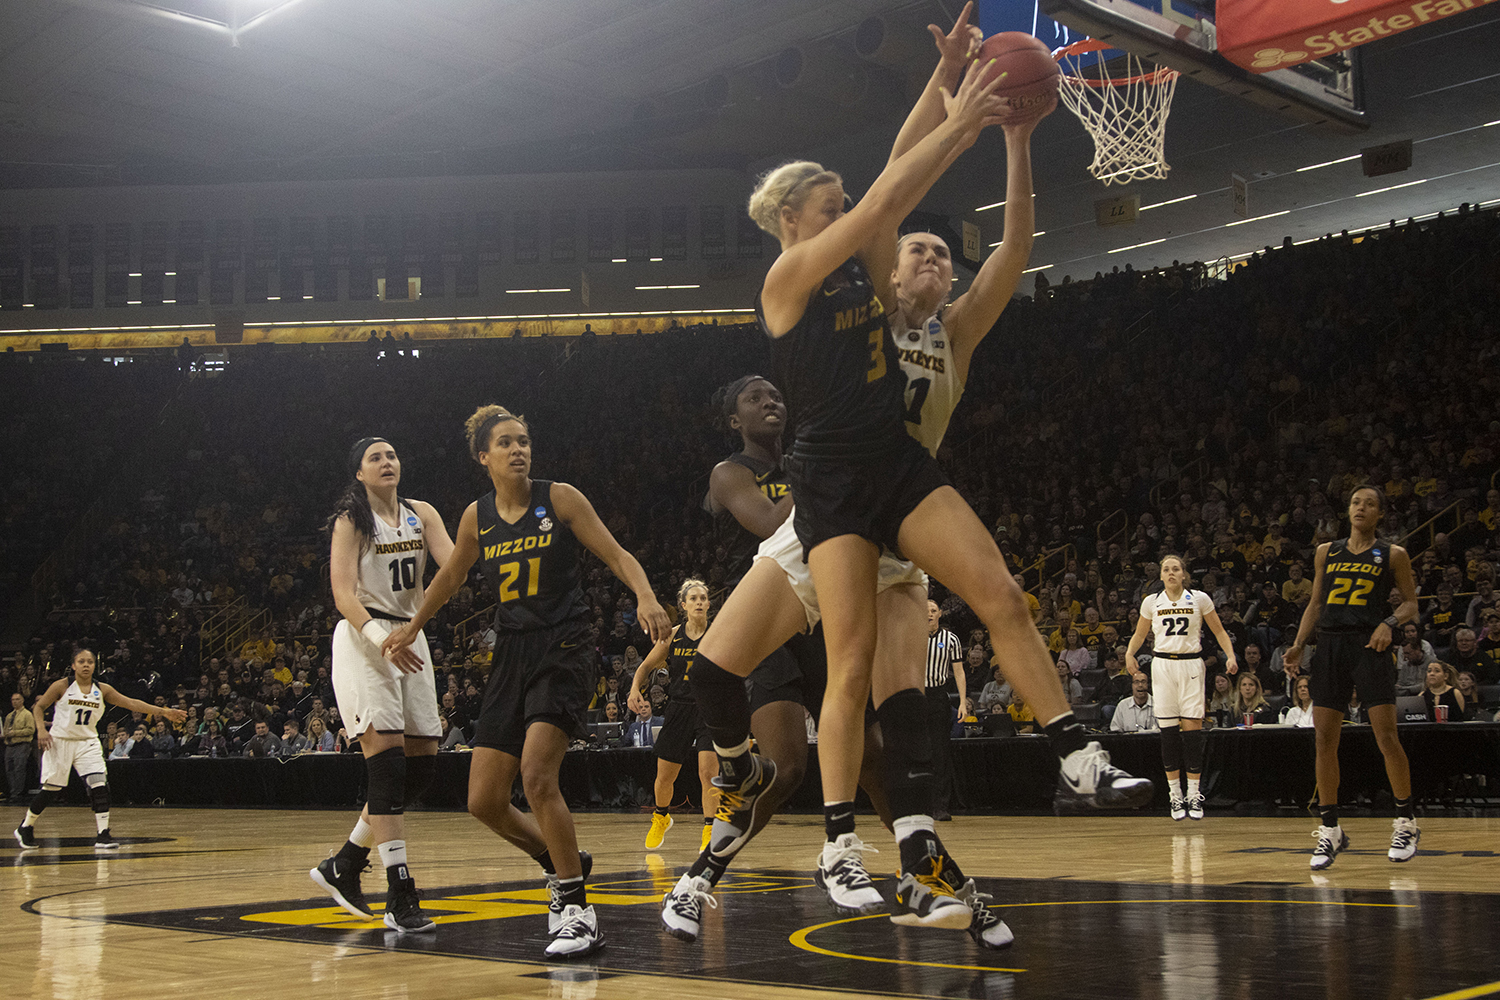 Iowa+forward+Hannah+Stewart+fights+for+a+rebound+with+Mizzou+guard+Sophie+Cunningham+during+the+Iowa%2FMizzou+NCAA+Tournament+second+round+women%27s+basketball+game+in+Carver-Hawkeye+Arena++on+Sunday%2C+March+24%2C+2019.+The+Hawkeyes+defeated+the+Tigers%2C+68-52.+